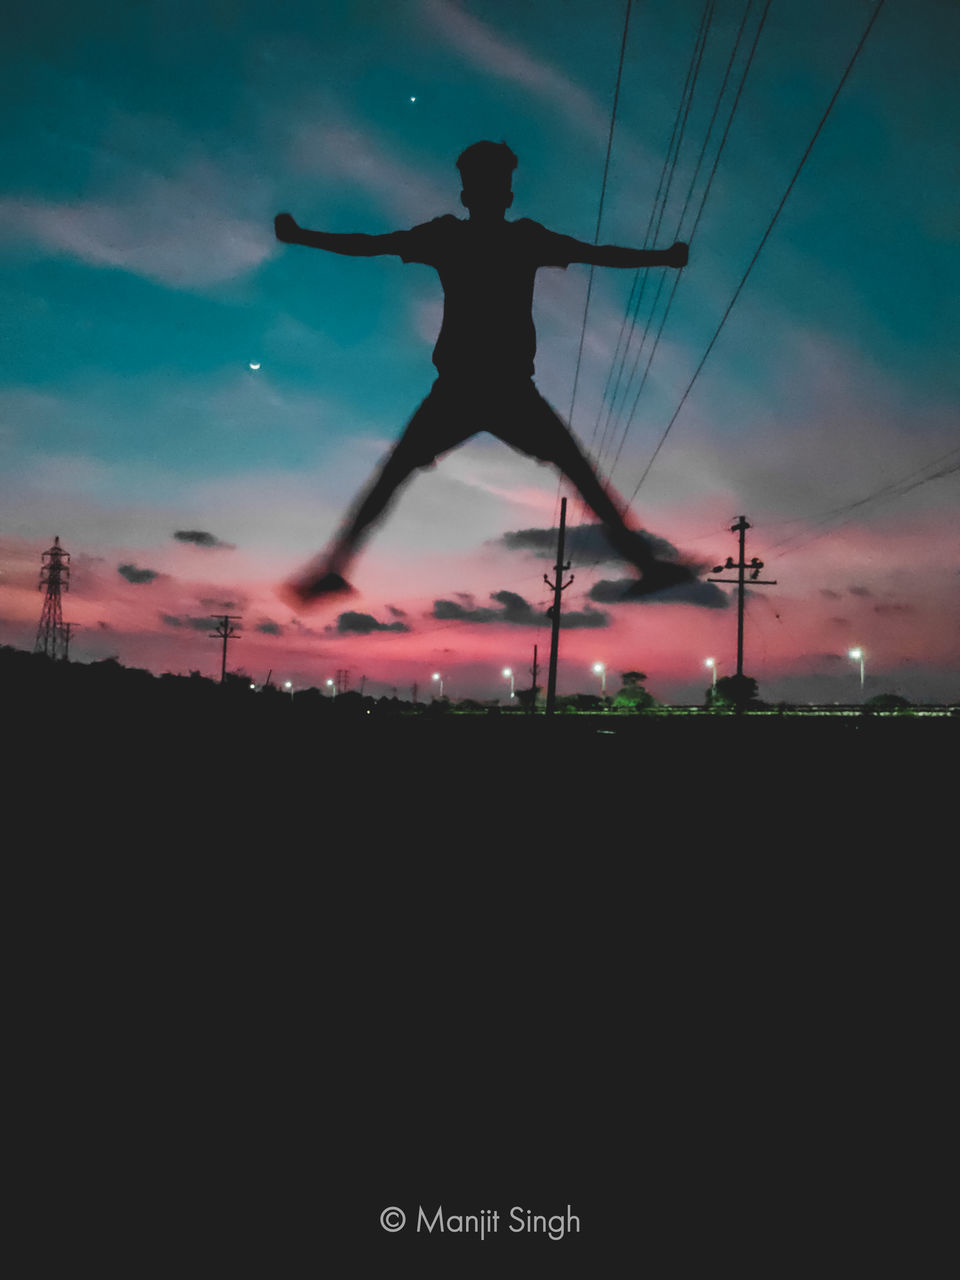 SILHOUETTE MAN WITH ARMS OUTSTRETCHED AGAINST SKY DURING SUNSET